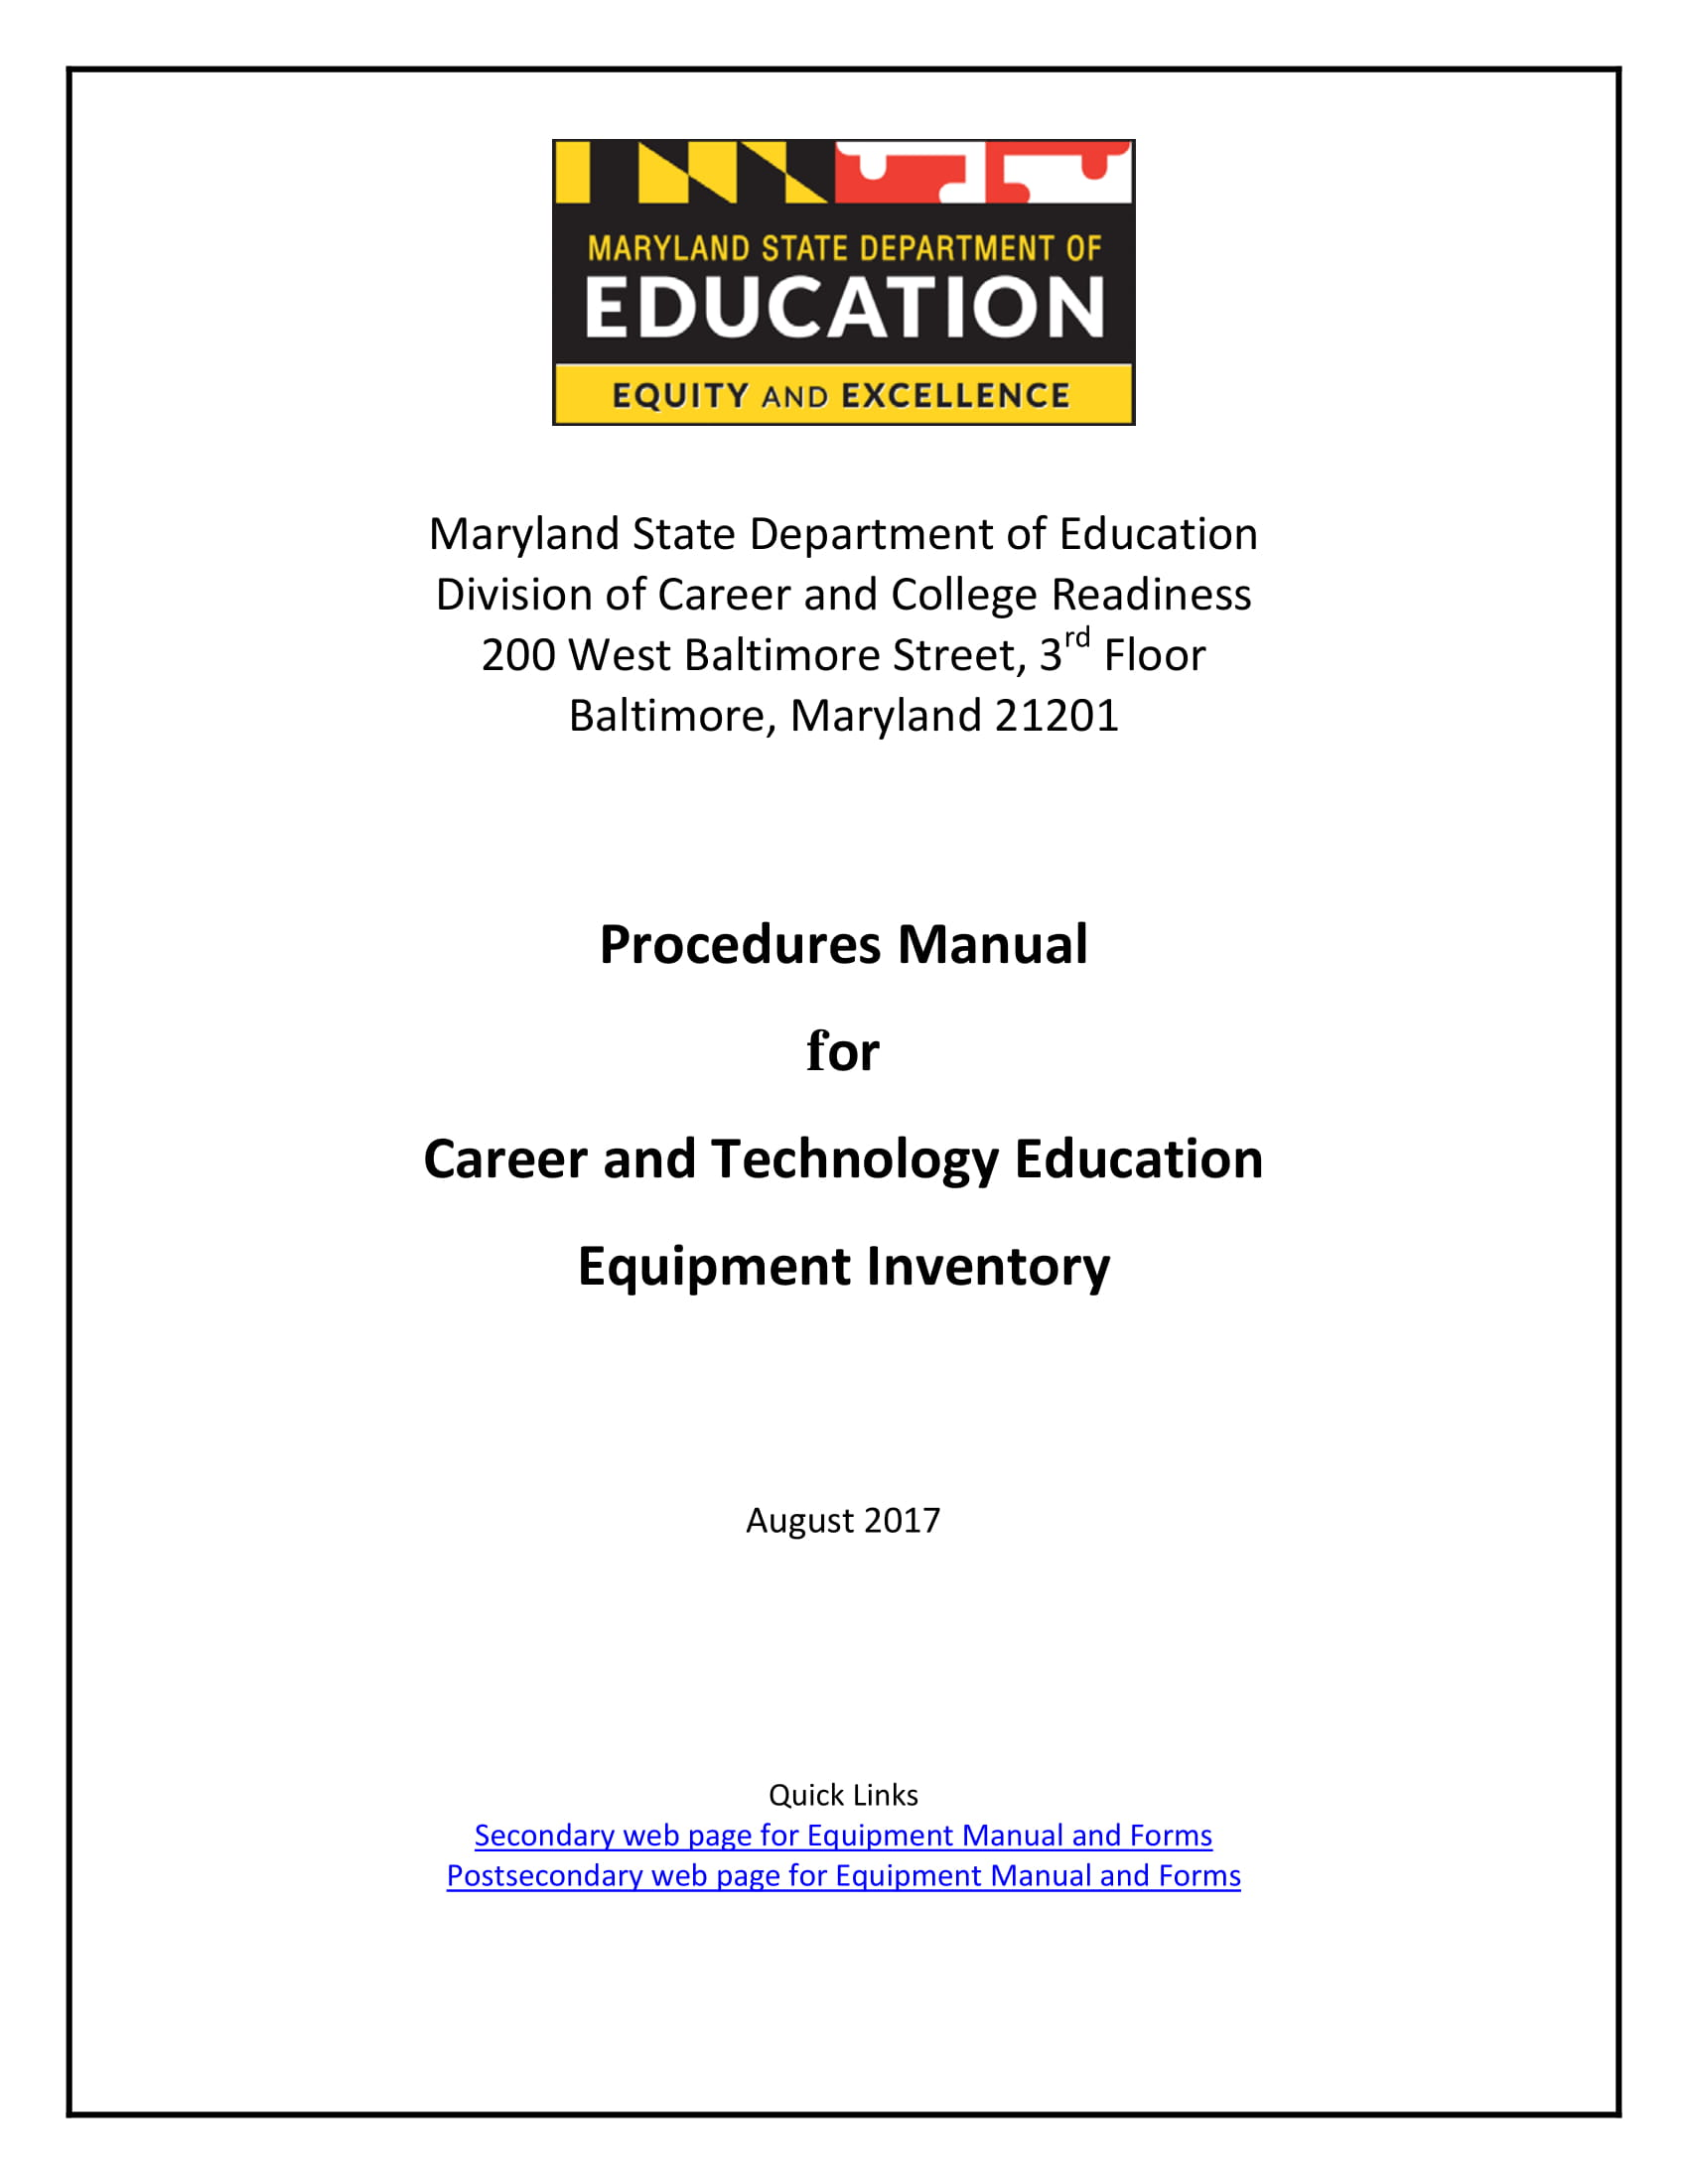 procedures manual for career and technology education equipment inventory example 11